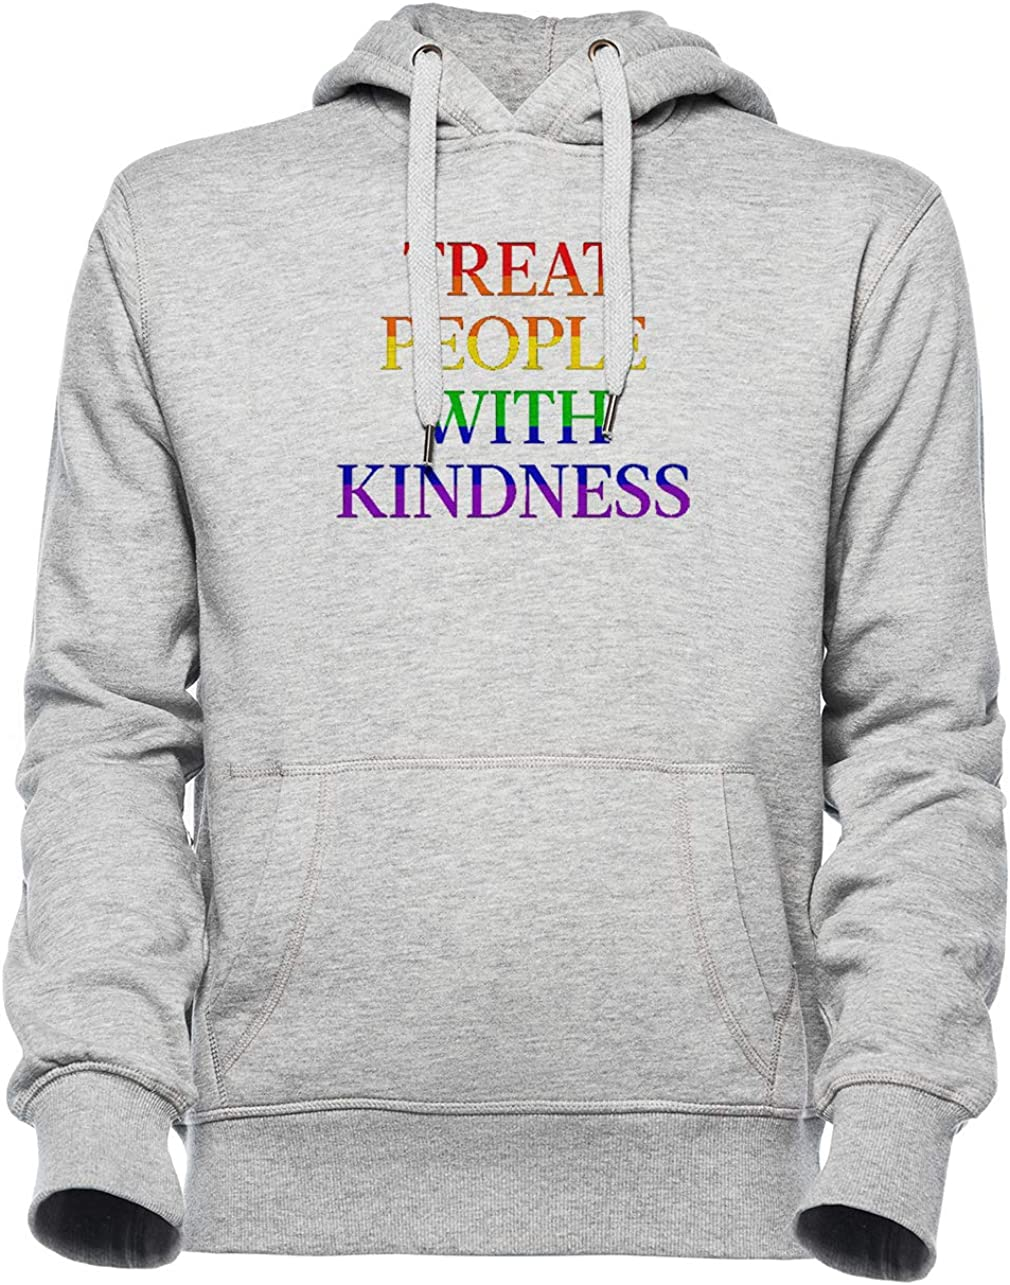 Pride Unisexo Gris Sudadera con Capucha Hombre Mujer Unisex Grey Hoodie Mens Womens Treat People with Kindness